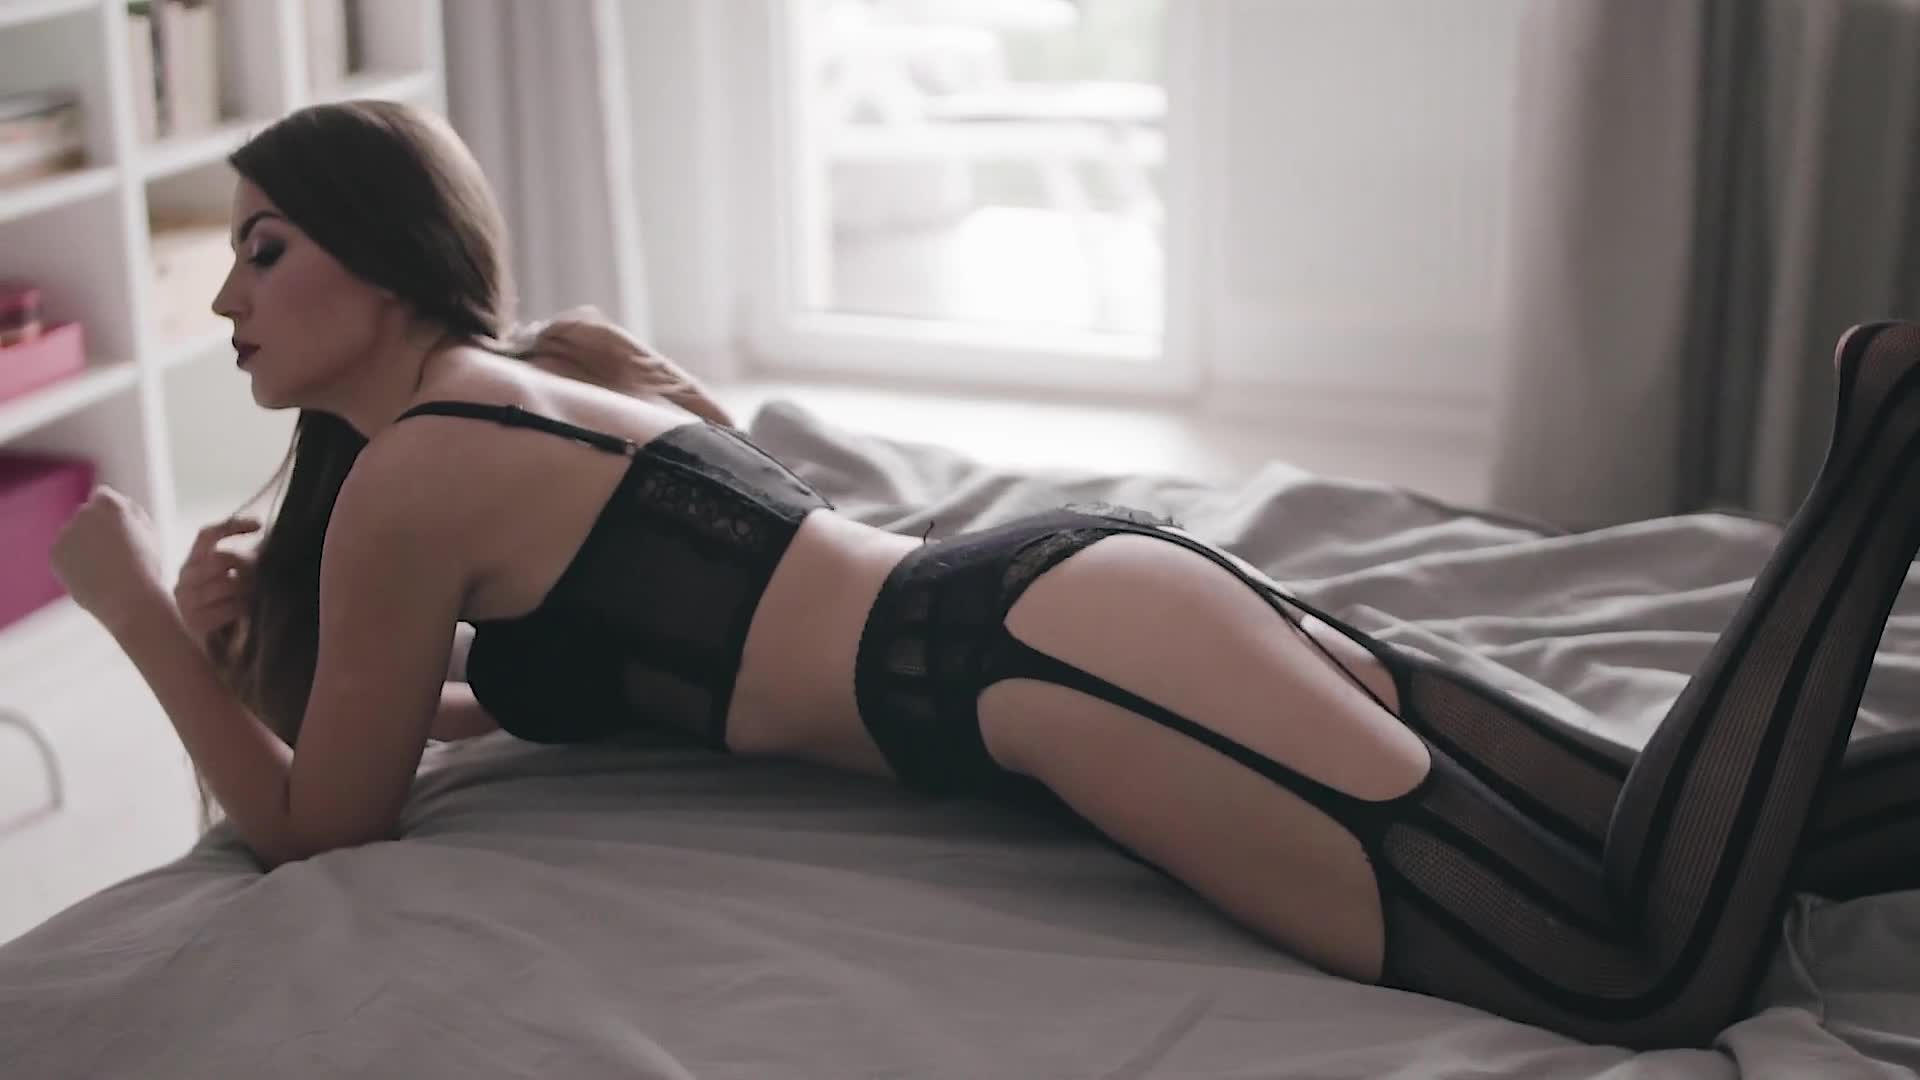 LINGERIE DREAM | ANNA ZAPALA